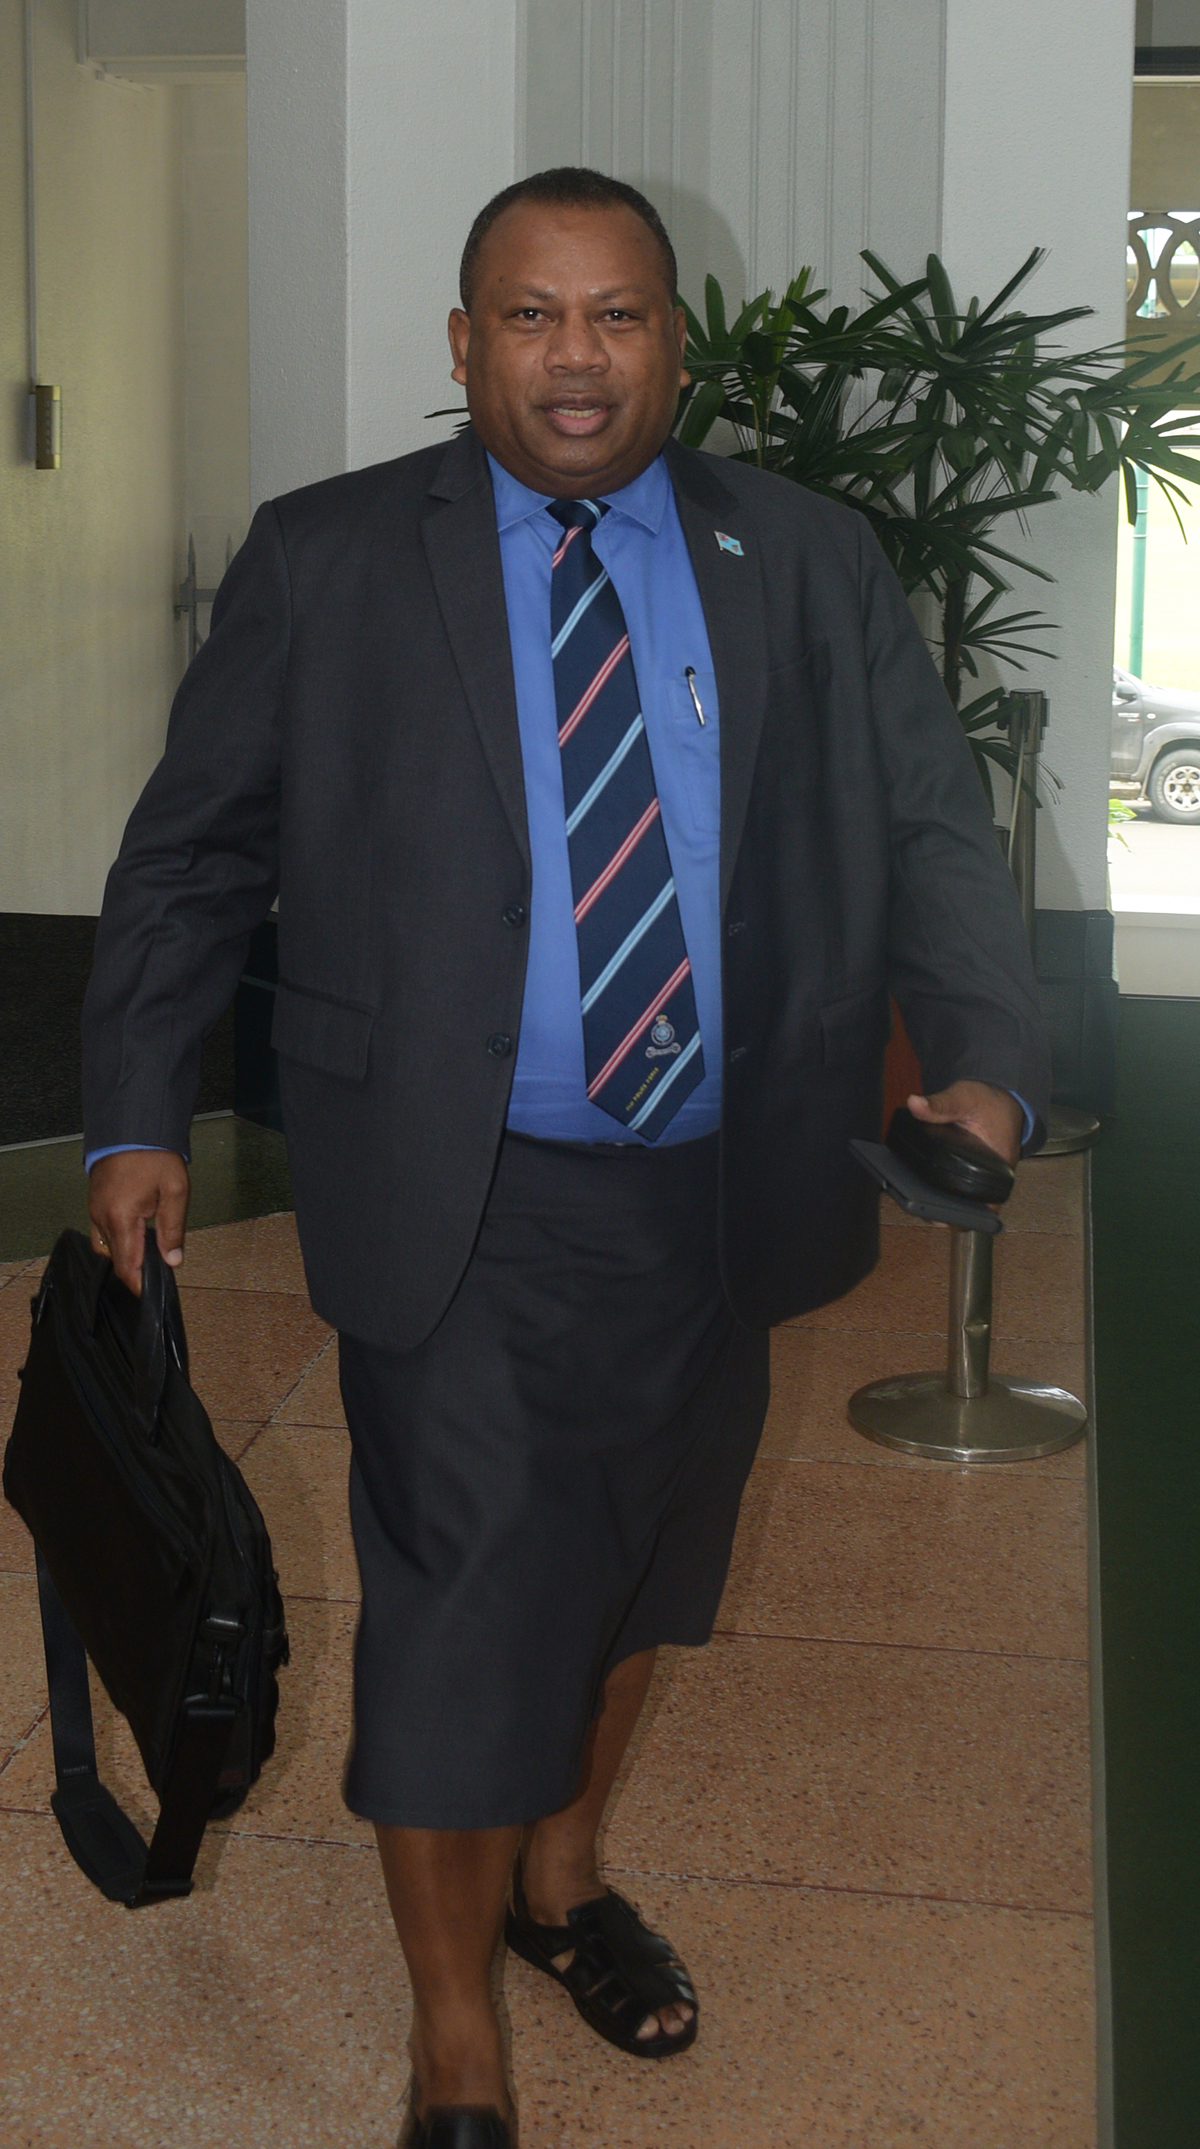 Minister for Defence, National Security and Foreign Affairs Inia Seruiratu outside the parliment house on February 11,2019.Photo: Simione Haravanua.